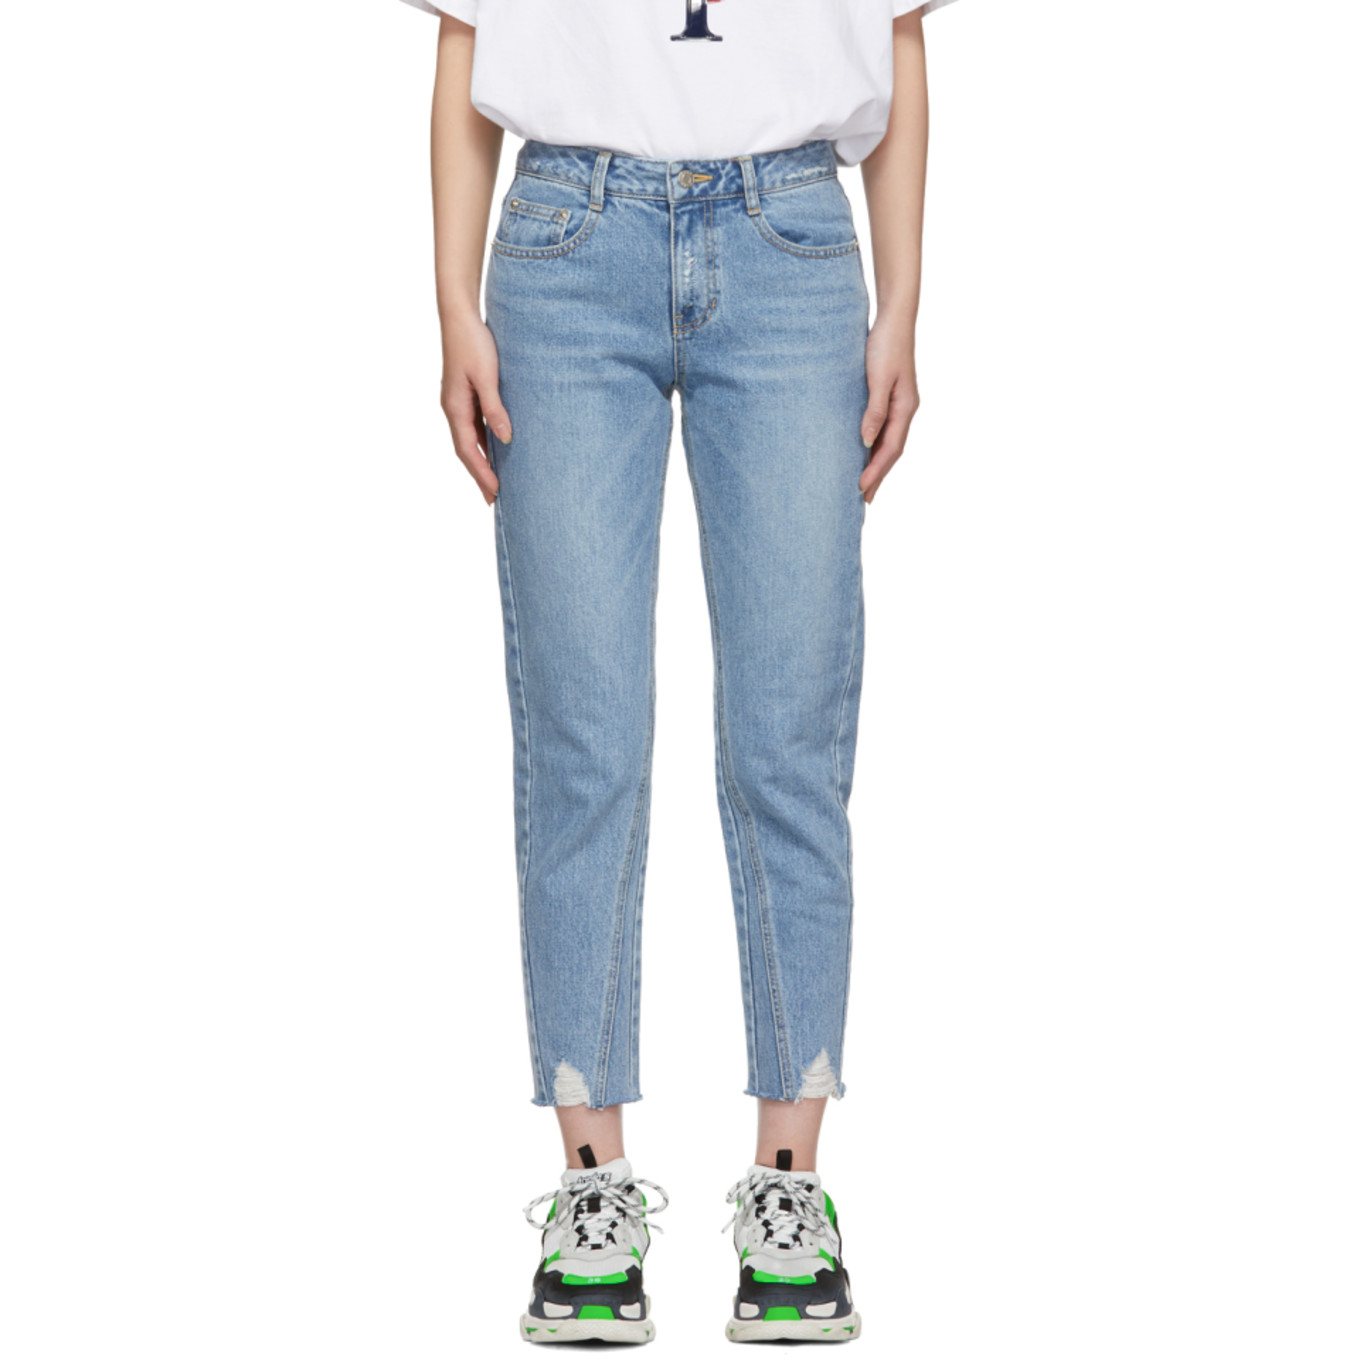 Blue Destroyed Semi Baggy Jeans by Sjyp